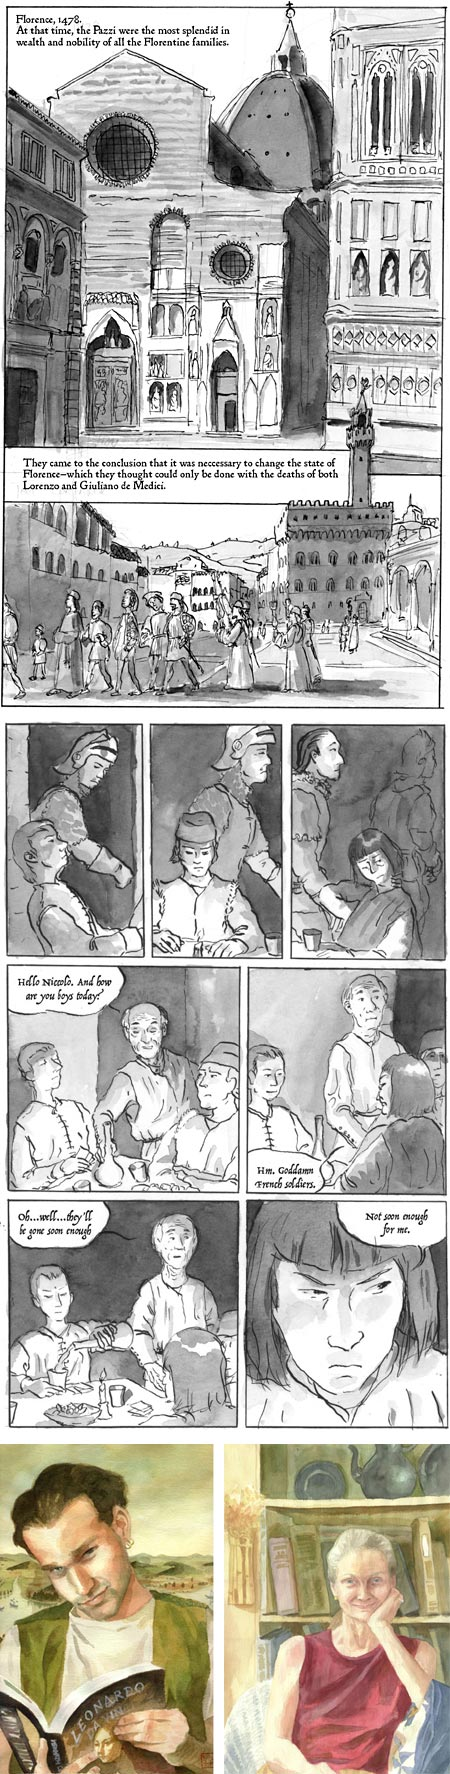 Machiavelli, online graphic novel by Don MacDonald